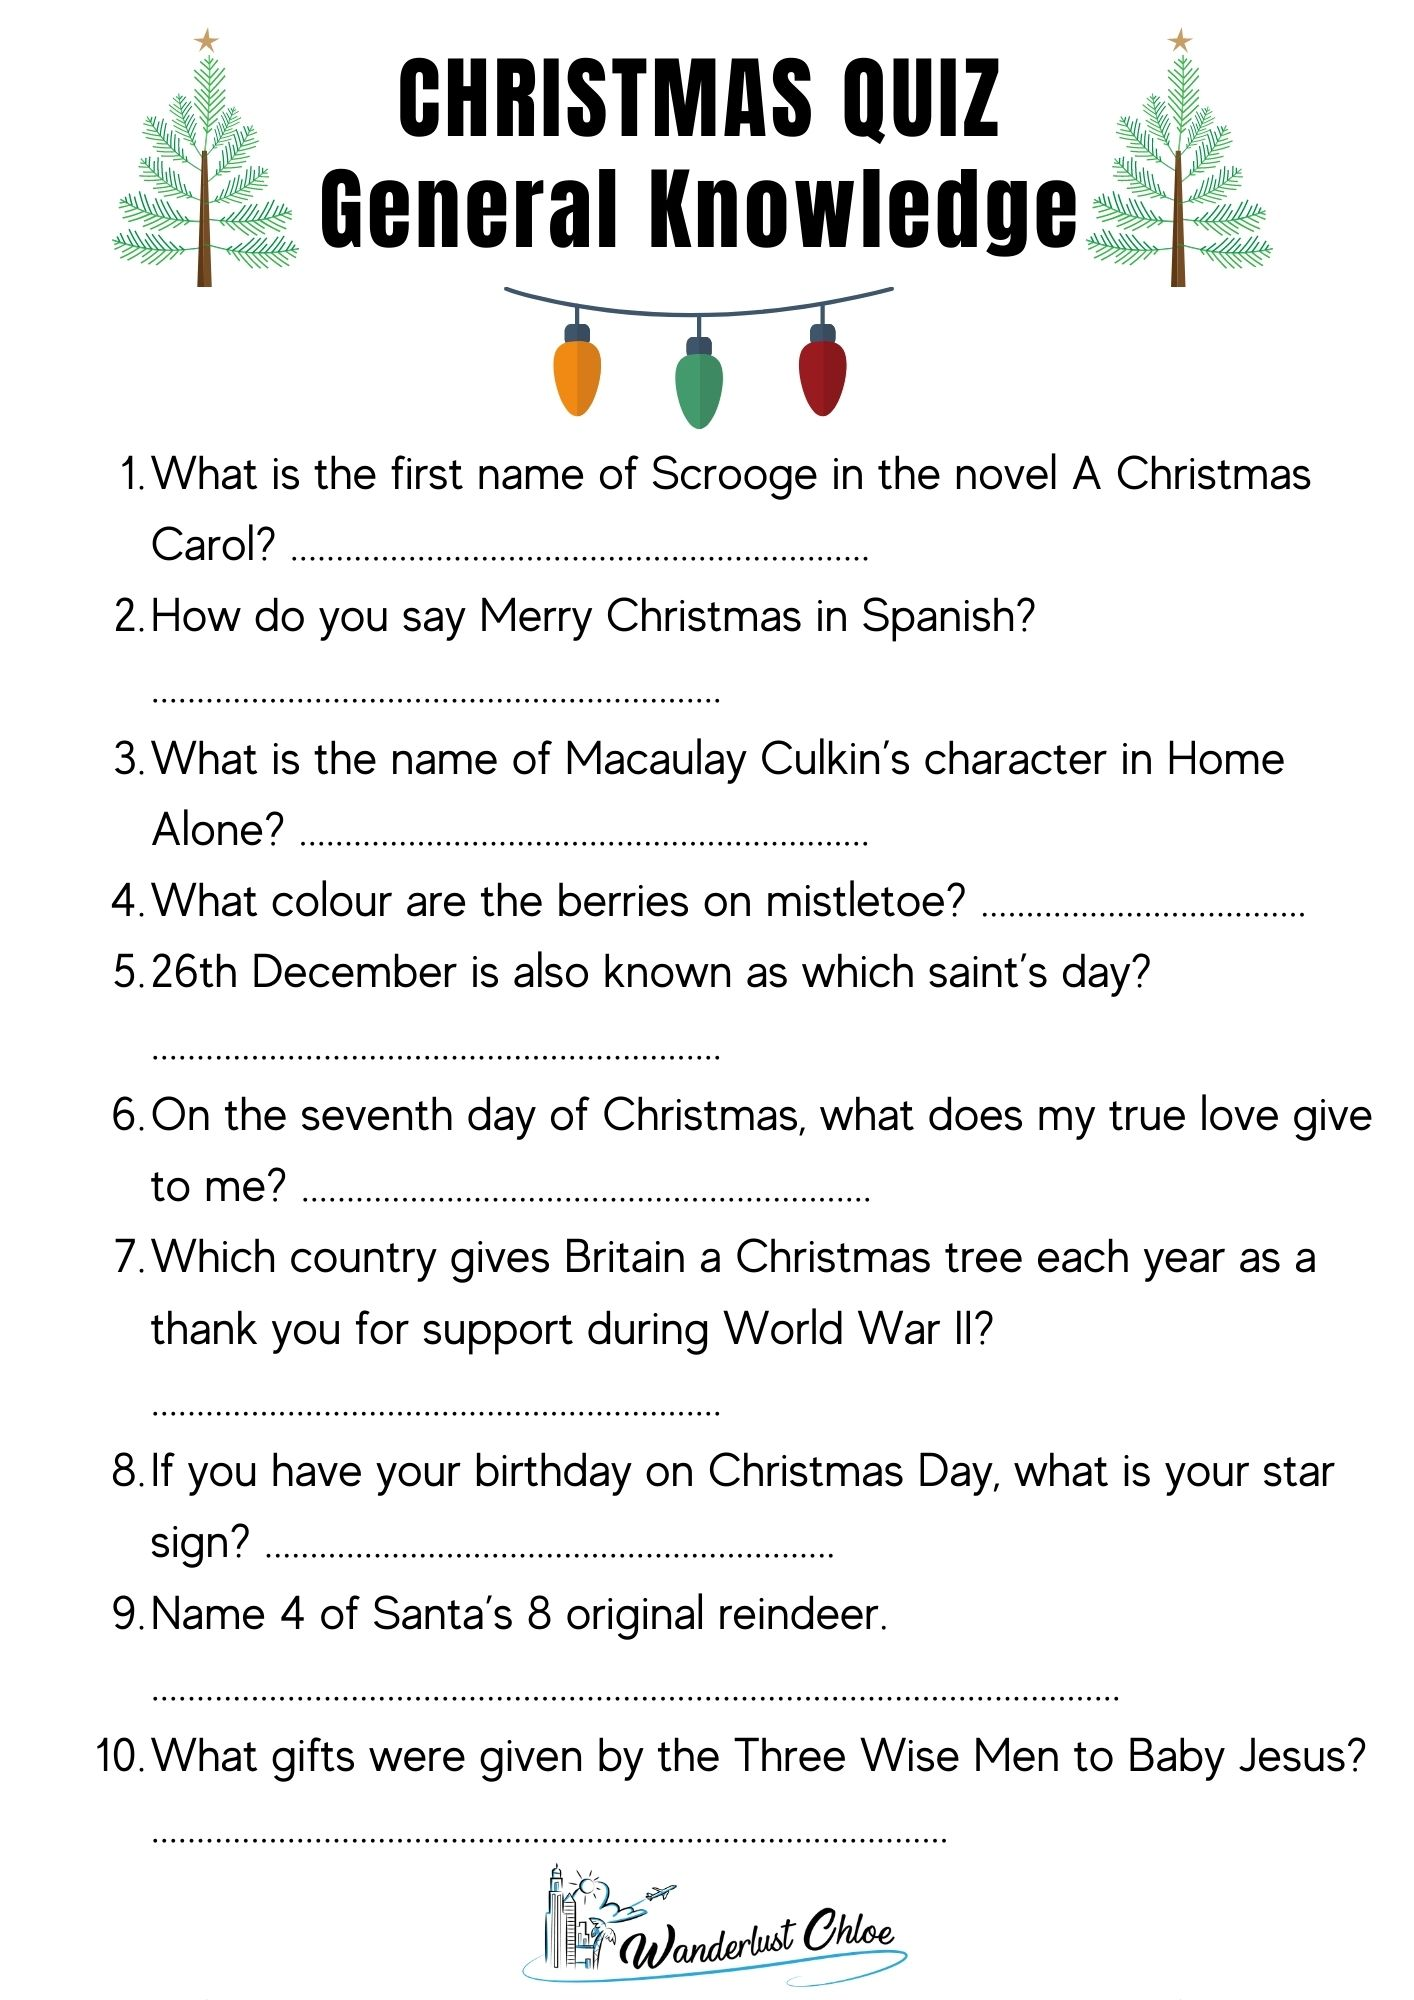 Printable Christmas Quiz Questions - General Knowledge